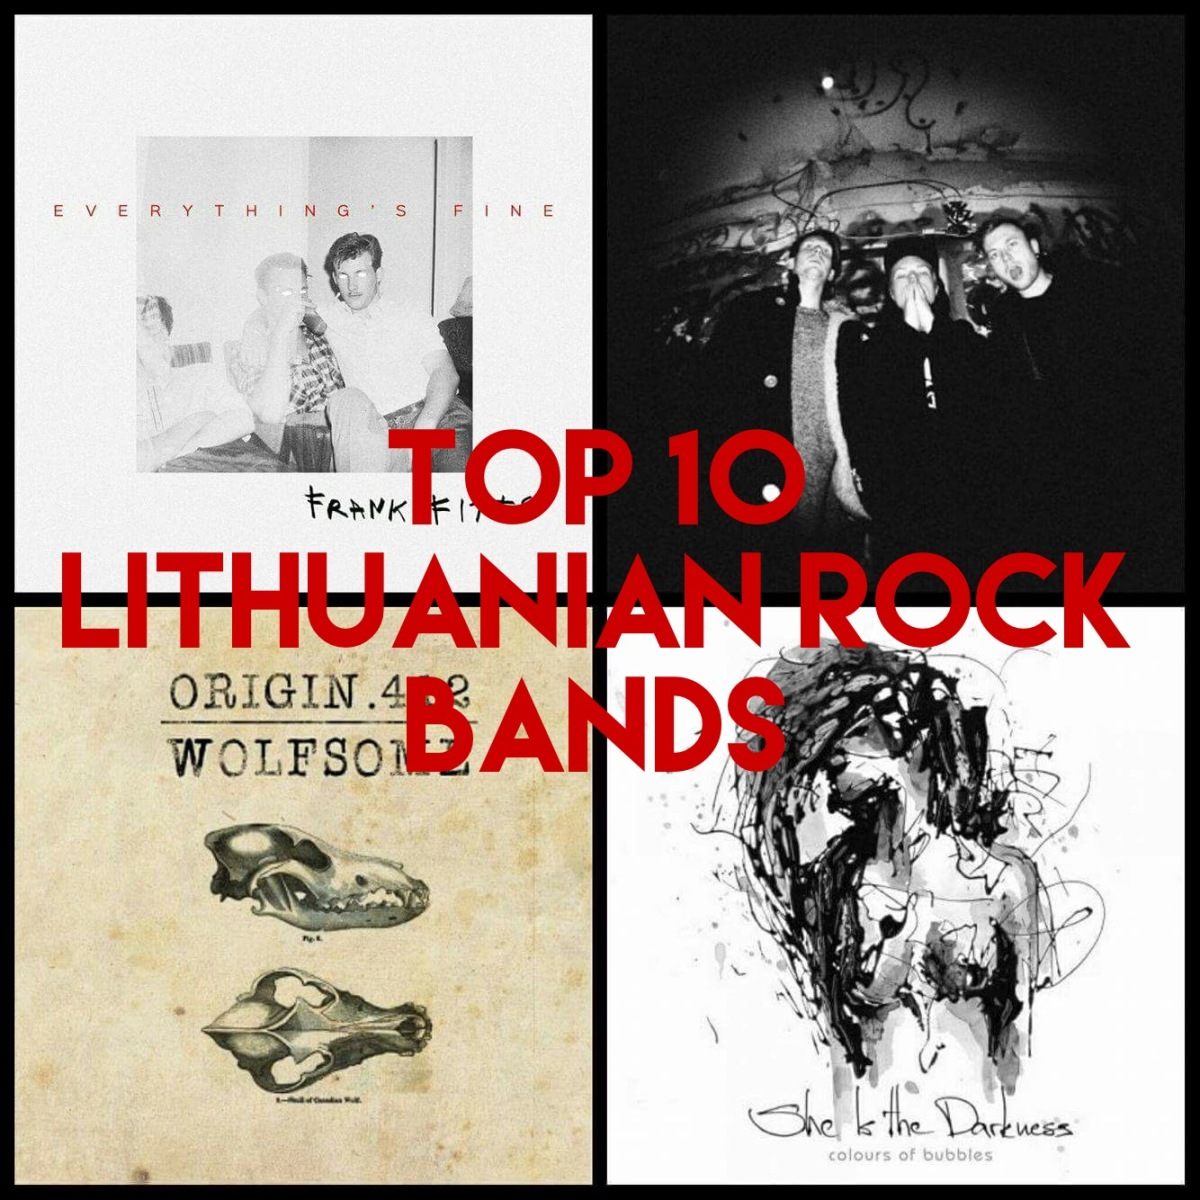 10 Amazing Rock bands from Lithuania (Part 1)